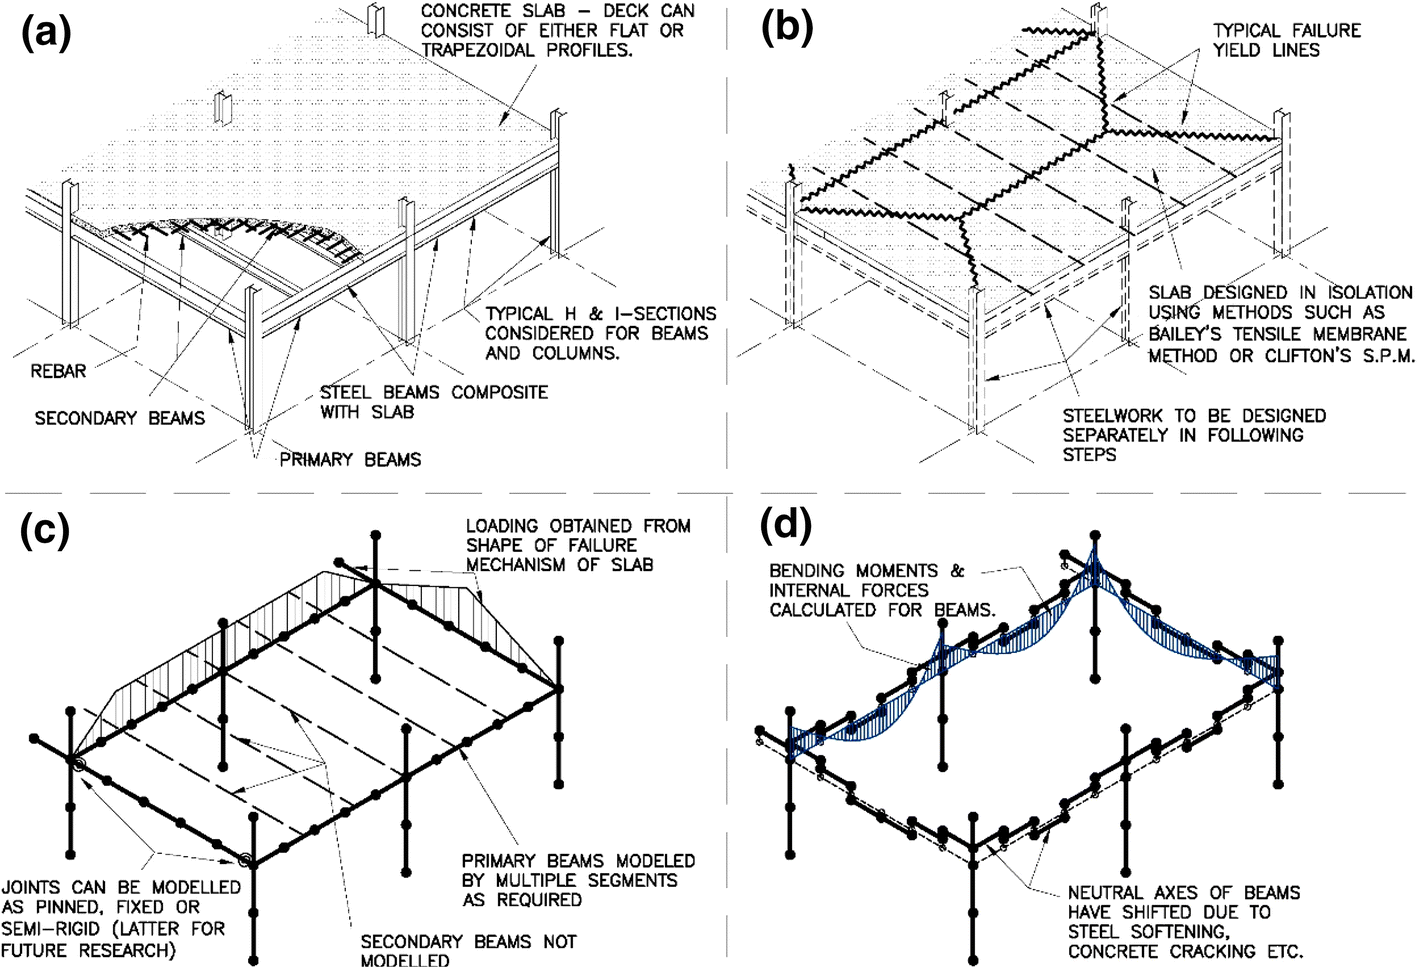 Analysis Of Structures In Fire As Simplified Skeletal Frames Using A For Accessibility Draw Shear Force And Bending Moment Diagram Open Image New Window